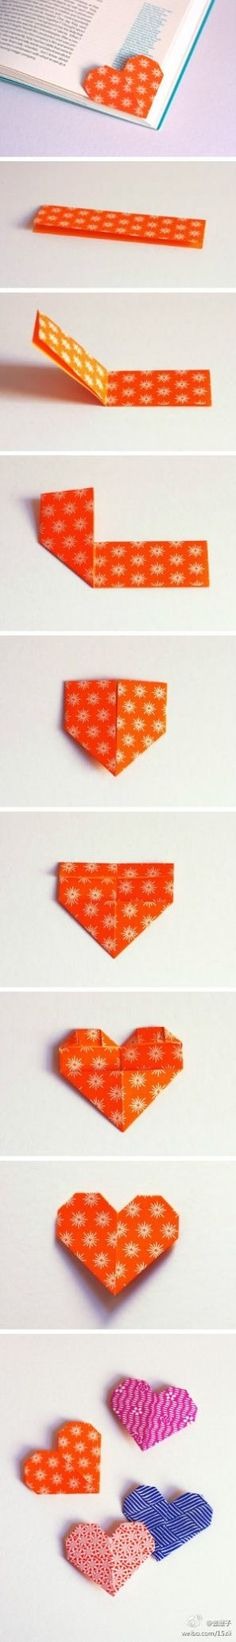 How to create a HEART bookmark.